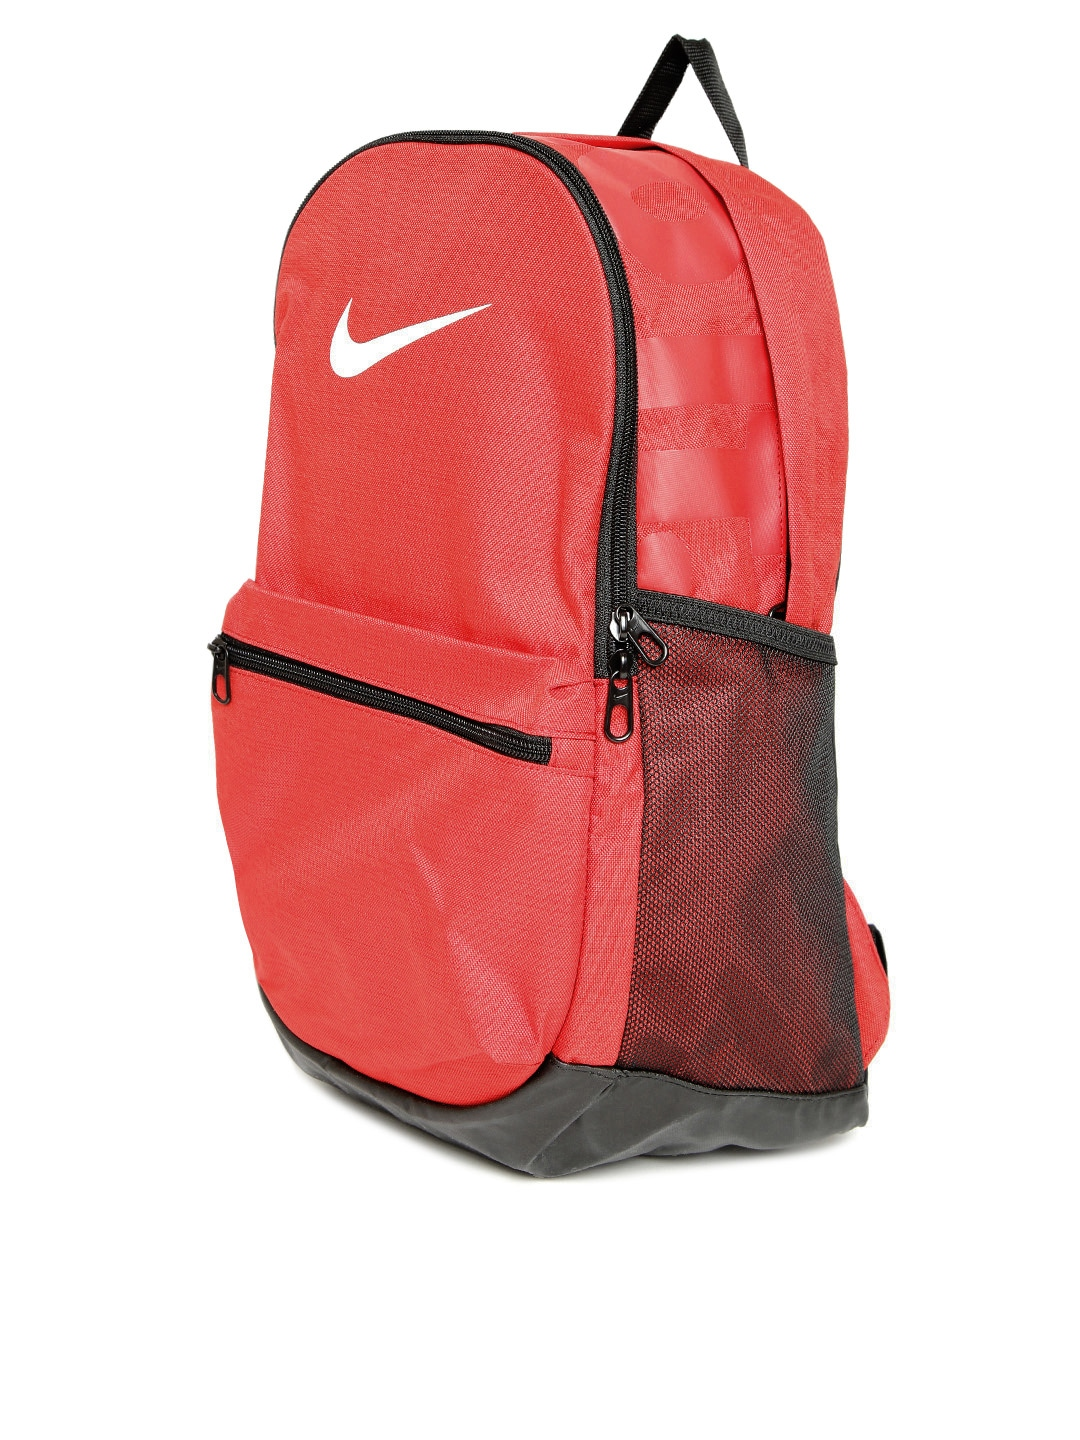 3c3a58d554d Buy nike backpack red   OFF77% Discounted